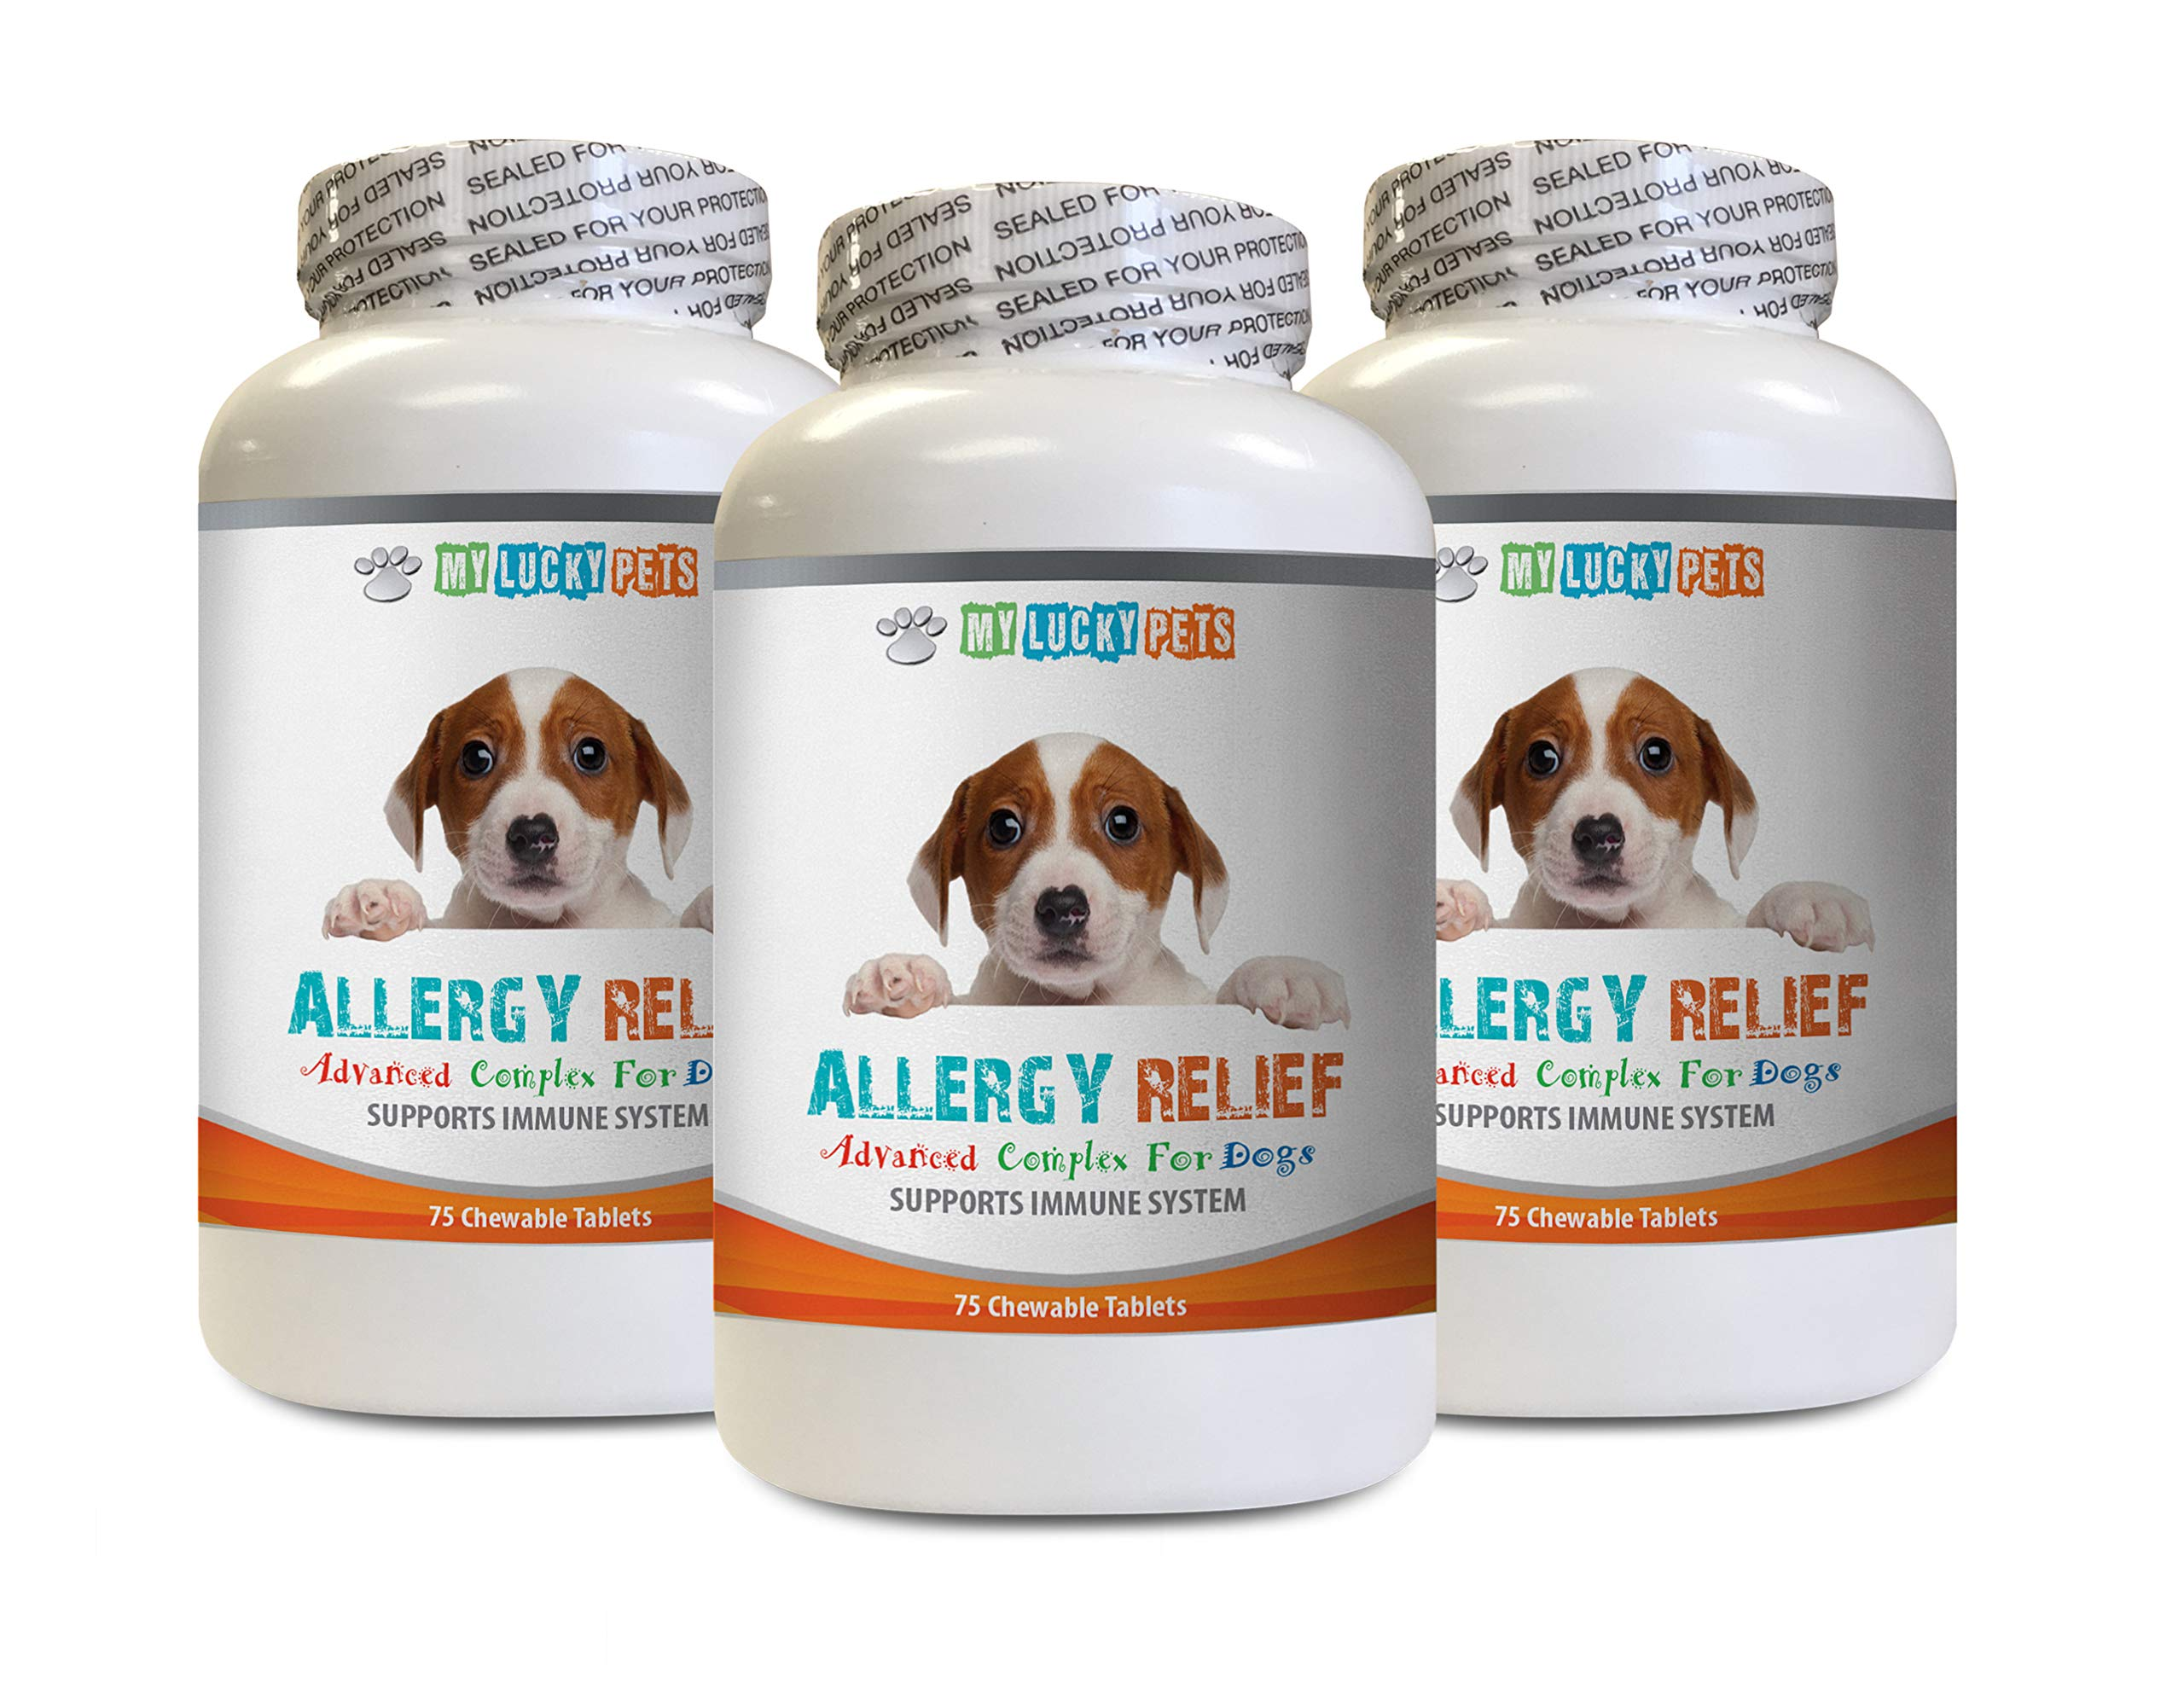 MY LUCKY PETS LLC Itch Relief for Dogs Paws - Allergy Relief for Dogs Itch Relief Support - Key Ingredients - Turmeric Bites for Dogs - 3 Bottles (225 Chewable Tablets) by MY LUCKY PETS LLC